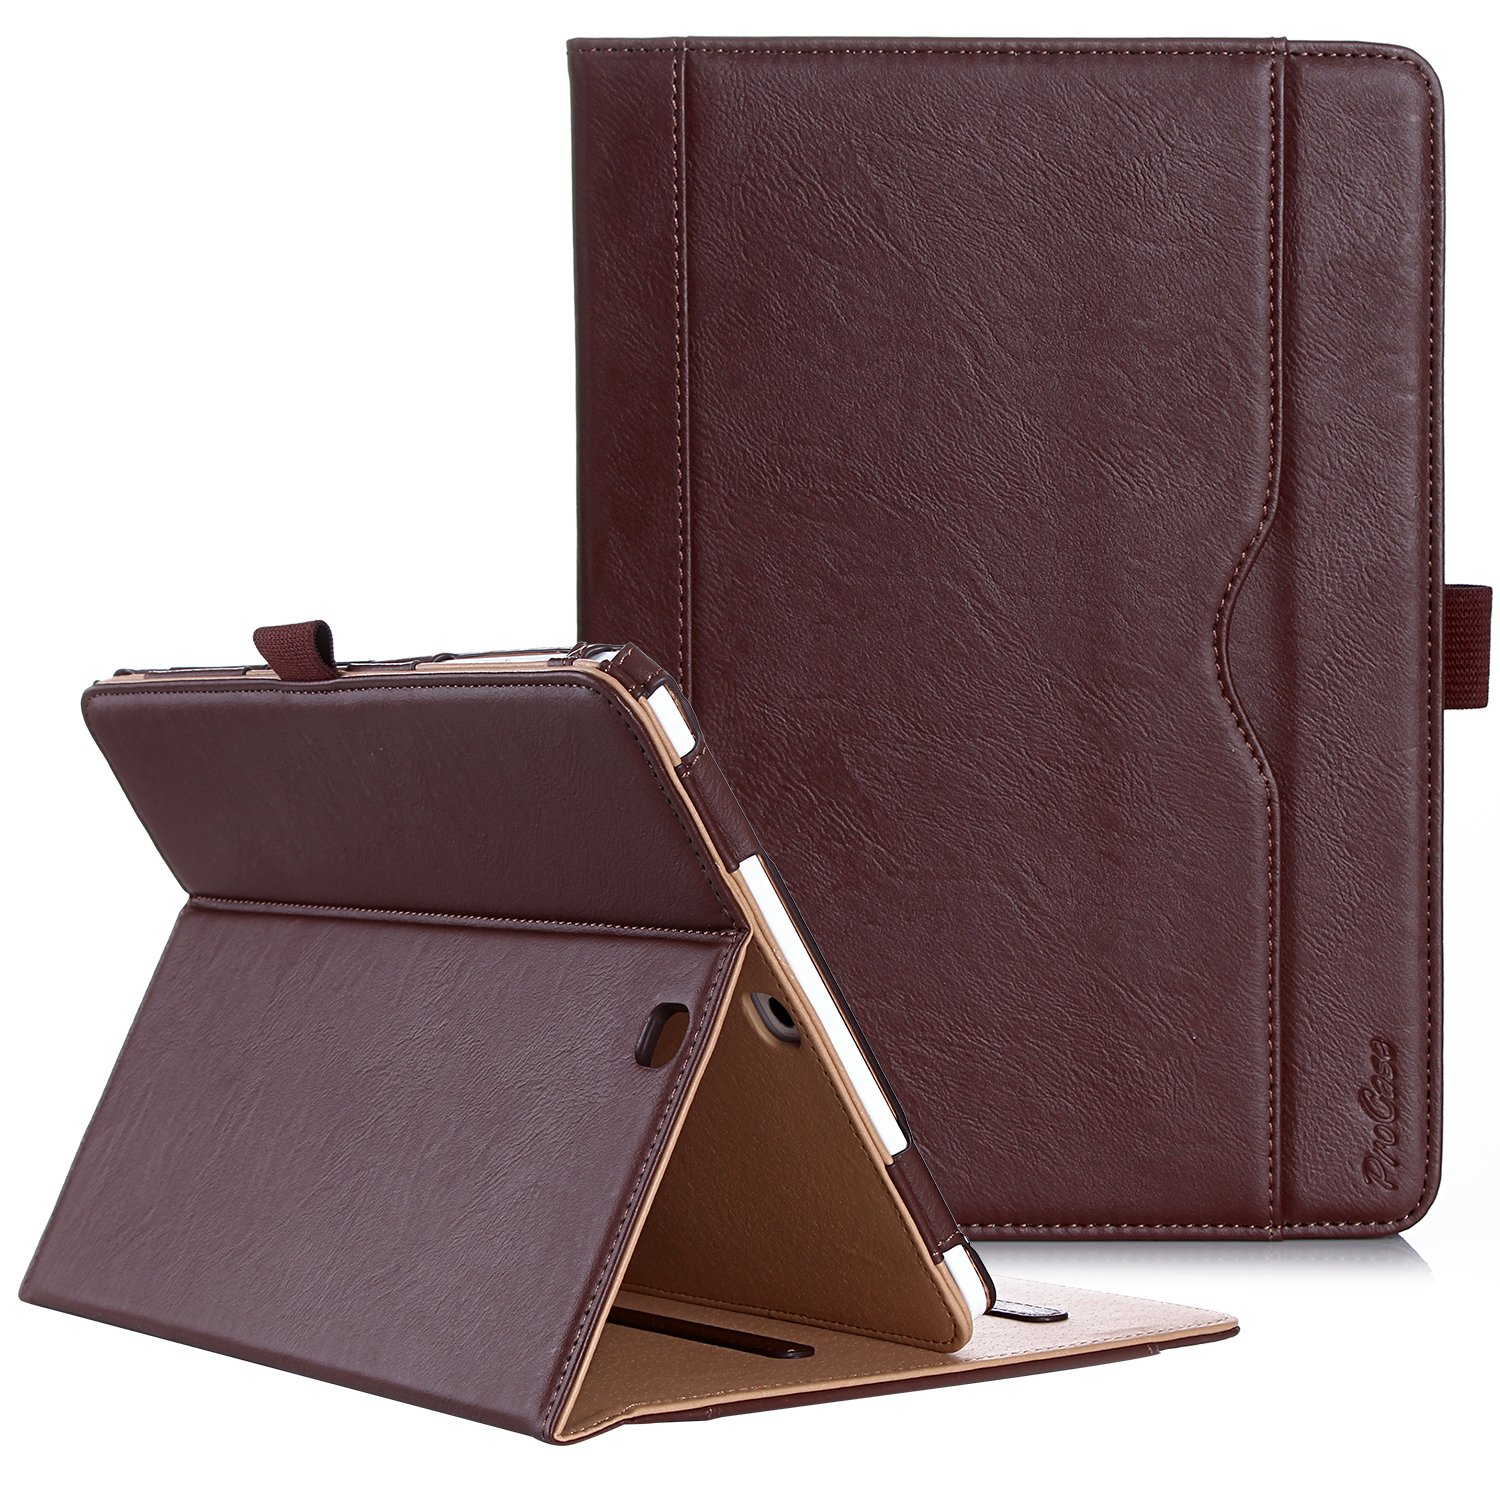 pretty nice 2cd90 c531e ProCase Samsung Galaxy Tab S2 9.7 Case - Leather Stand Folio Case Cover for  Galaxy Tab S2 Tablet (9.7 inch, SM-T810 T815 T813) -Brown